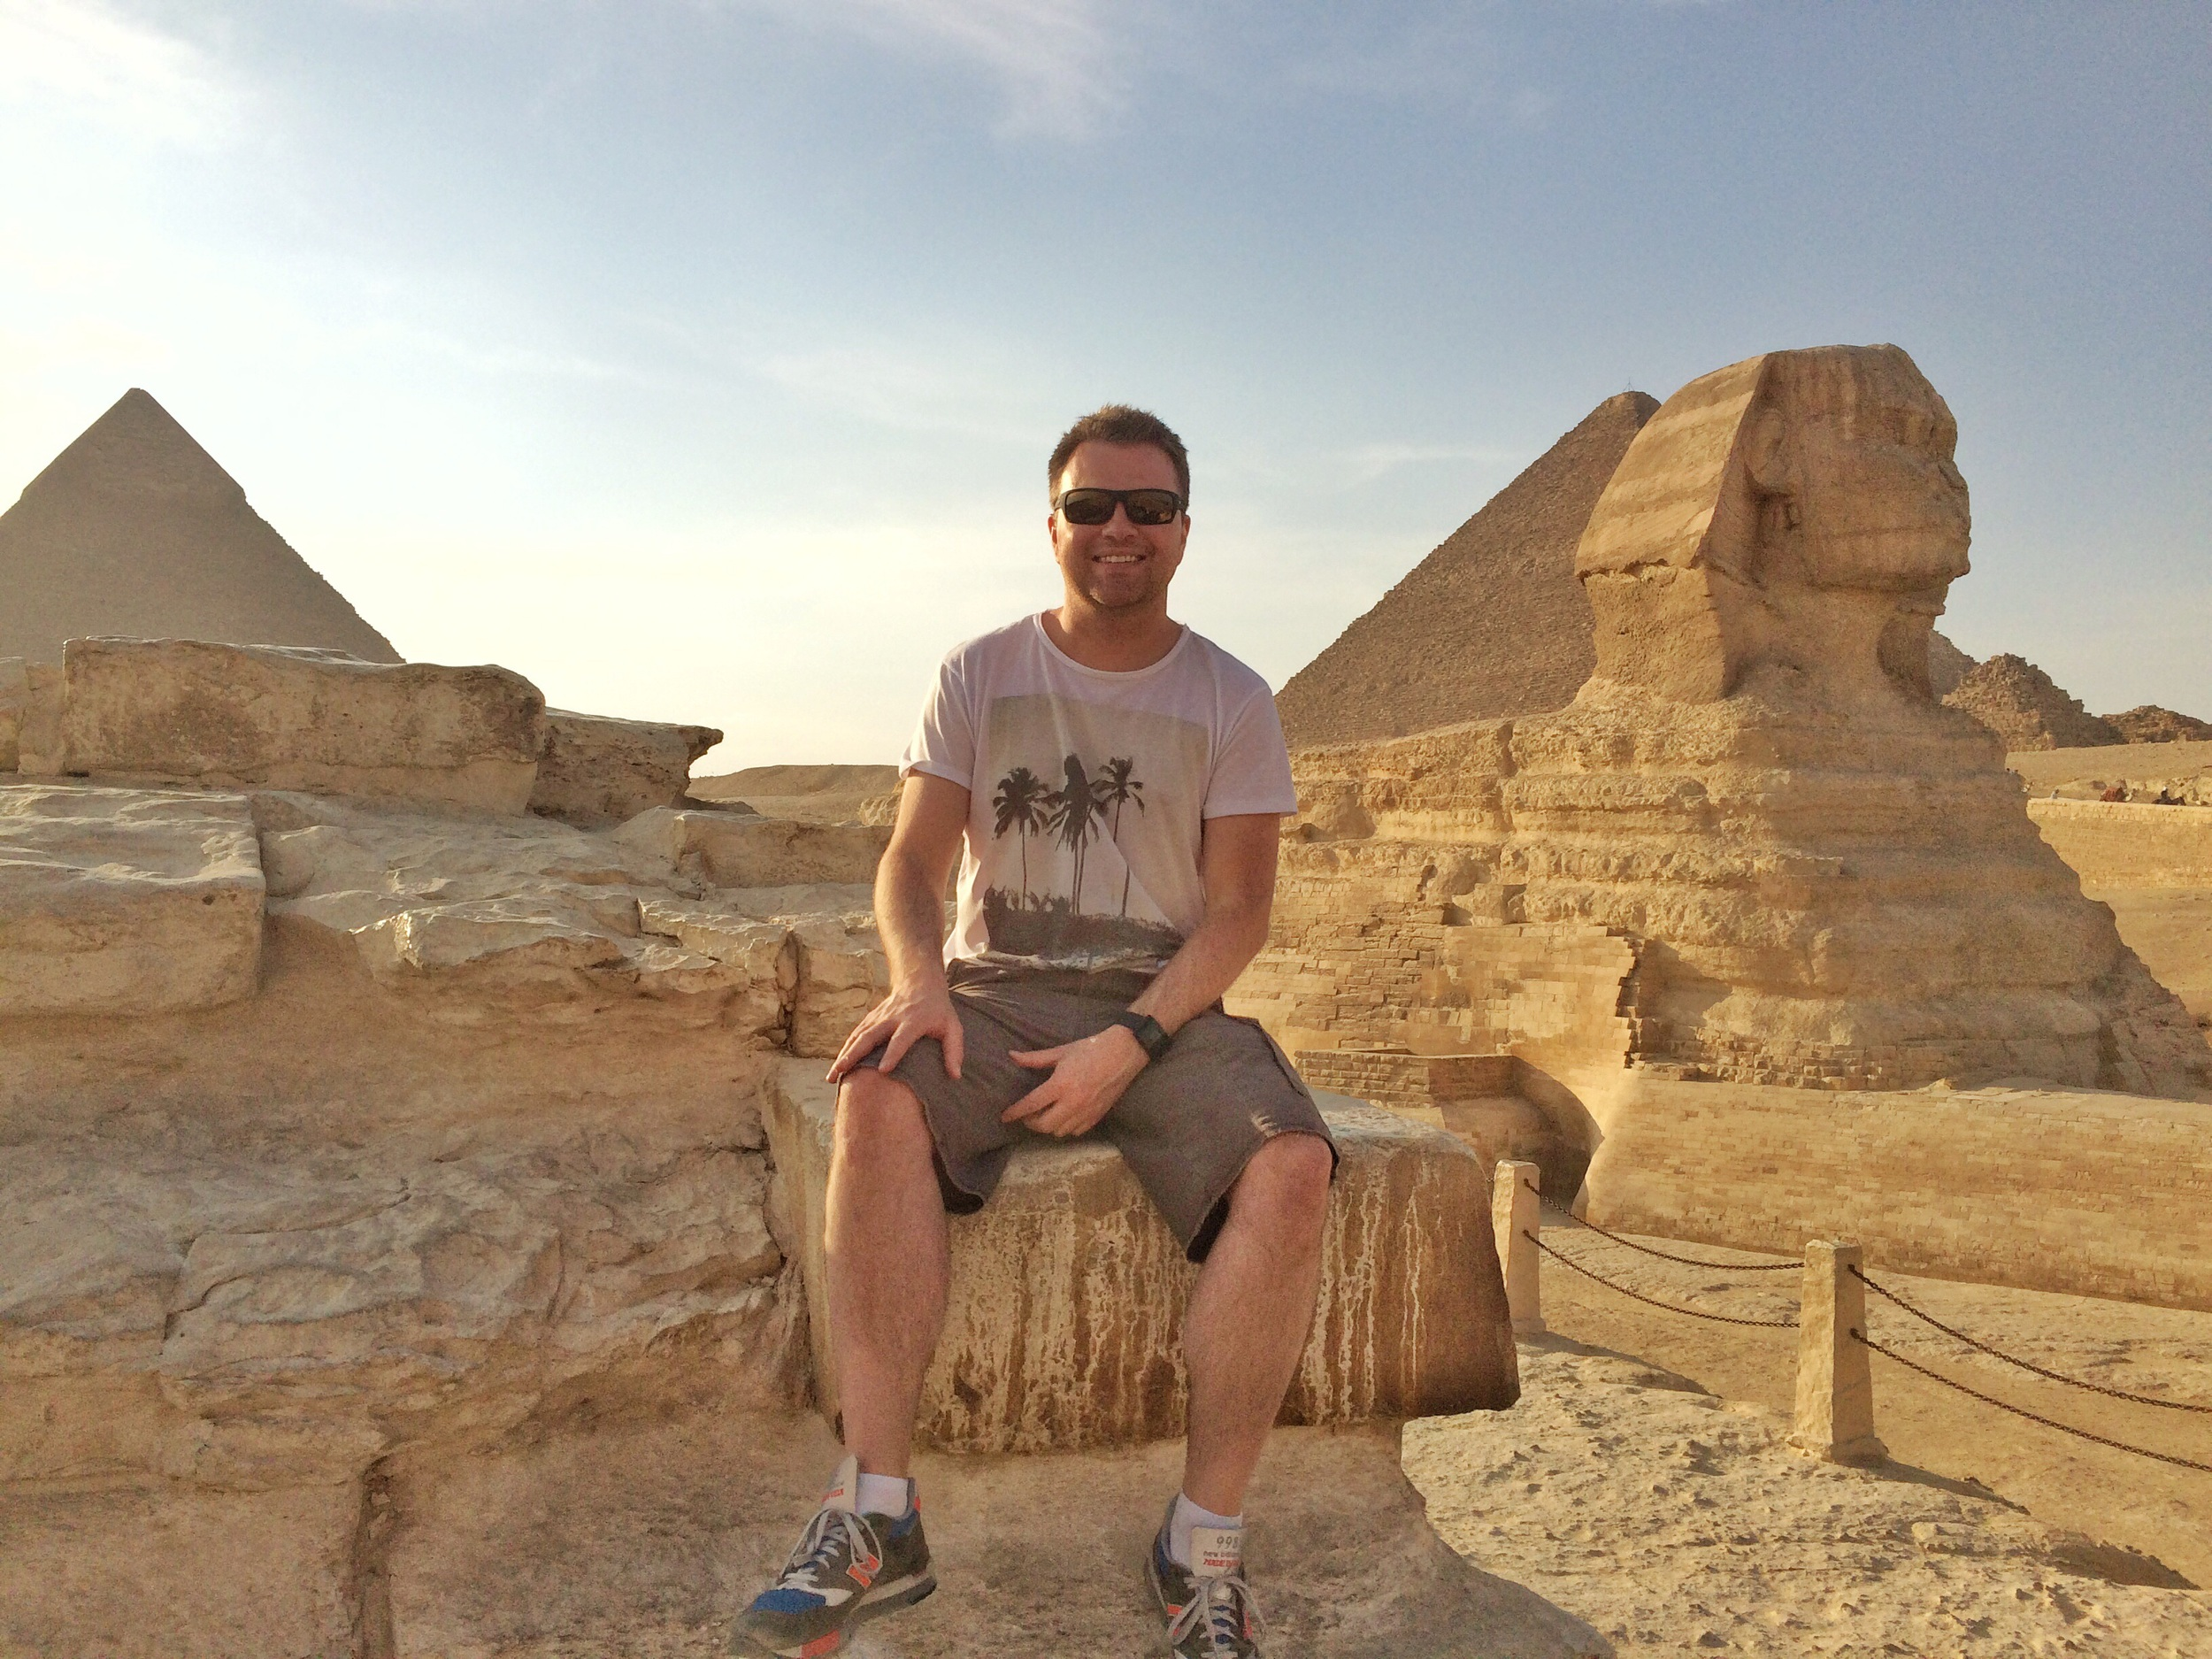 Me next to The Great Sphinx of Giza